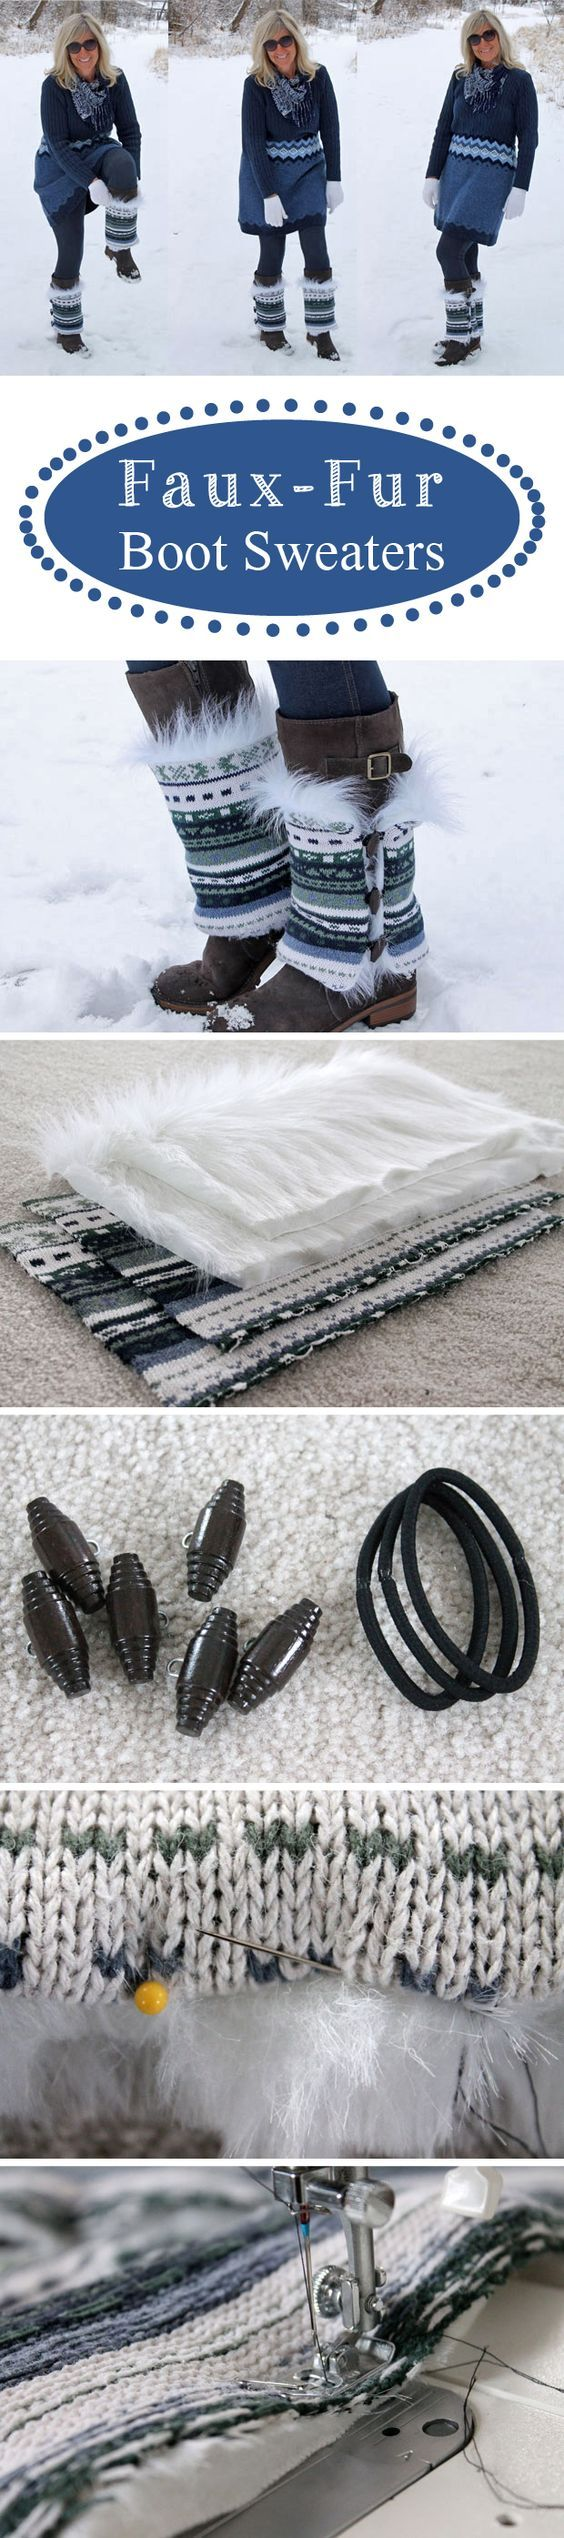 Dress up your boots with these adorable faux-fur boot sweaters! Simple to make and can go over any pair making them versatile http://www.ehow.com/ehow-crafts/blog/diy-faux-fur-boot-sweaters/?utm_source=pinterest.com&utm_medium=referral&utm_content=blog&utm_campaign=fanpage